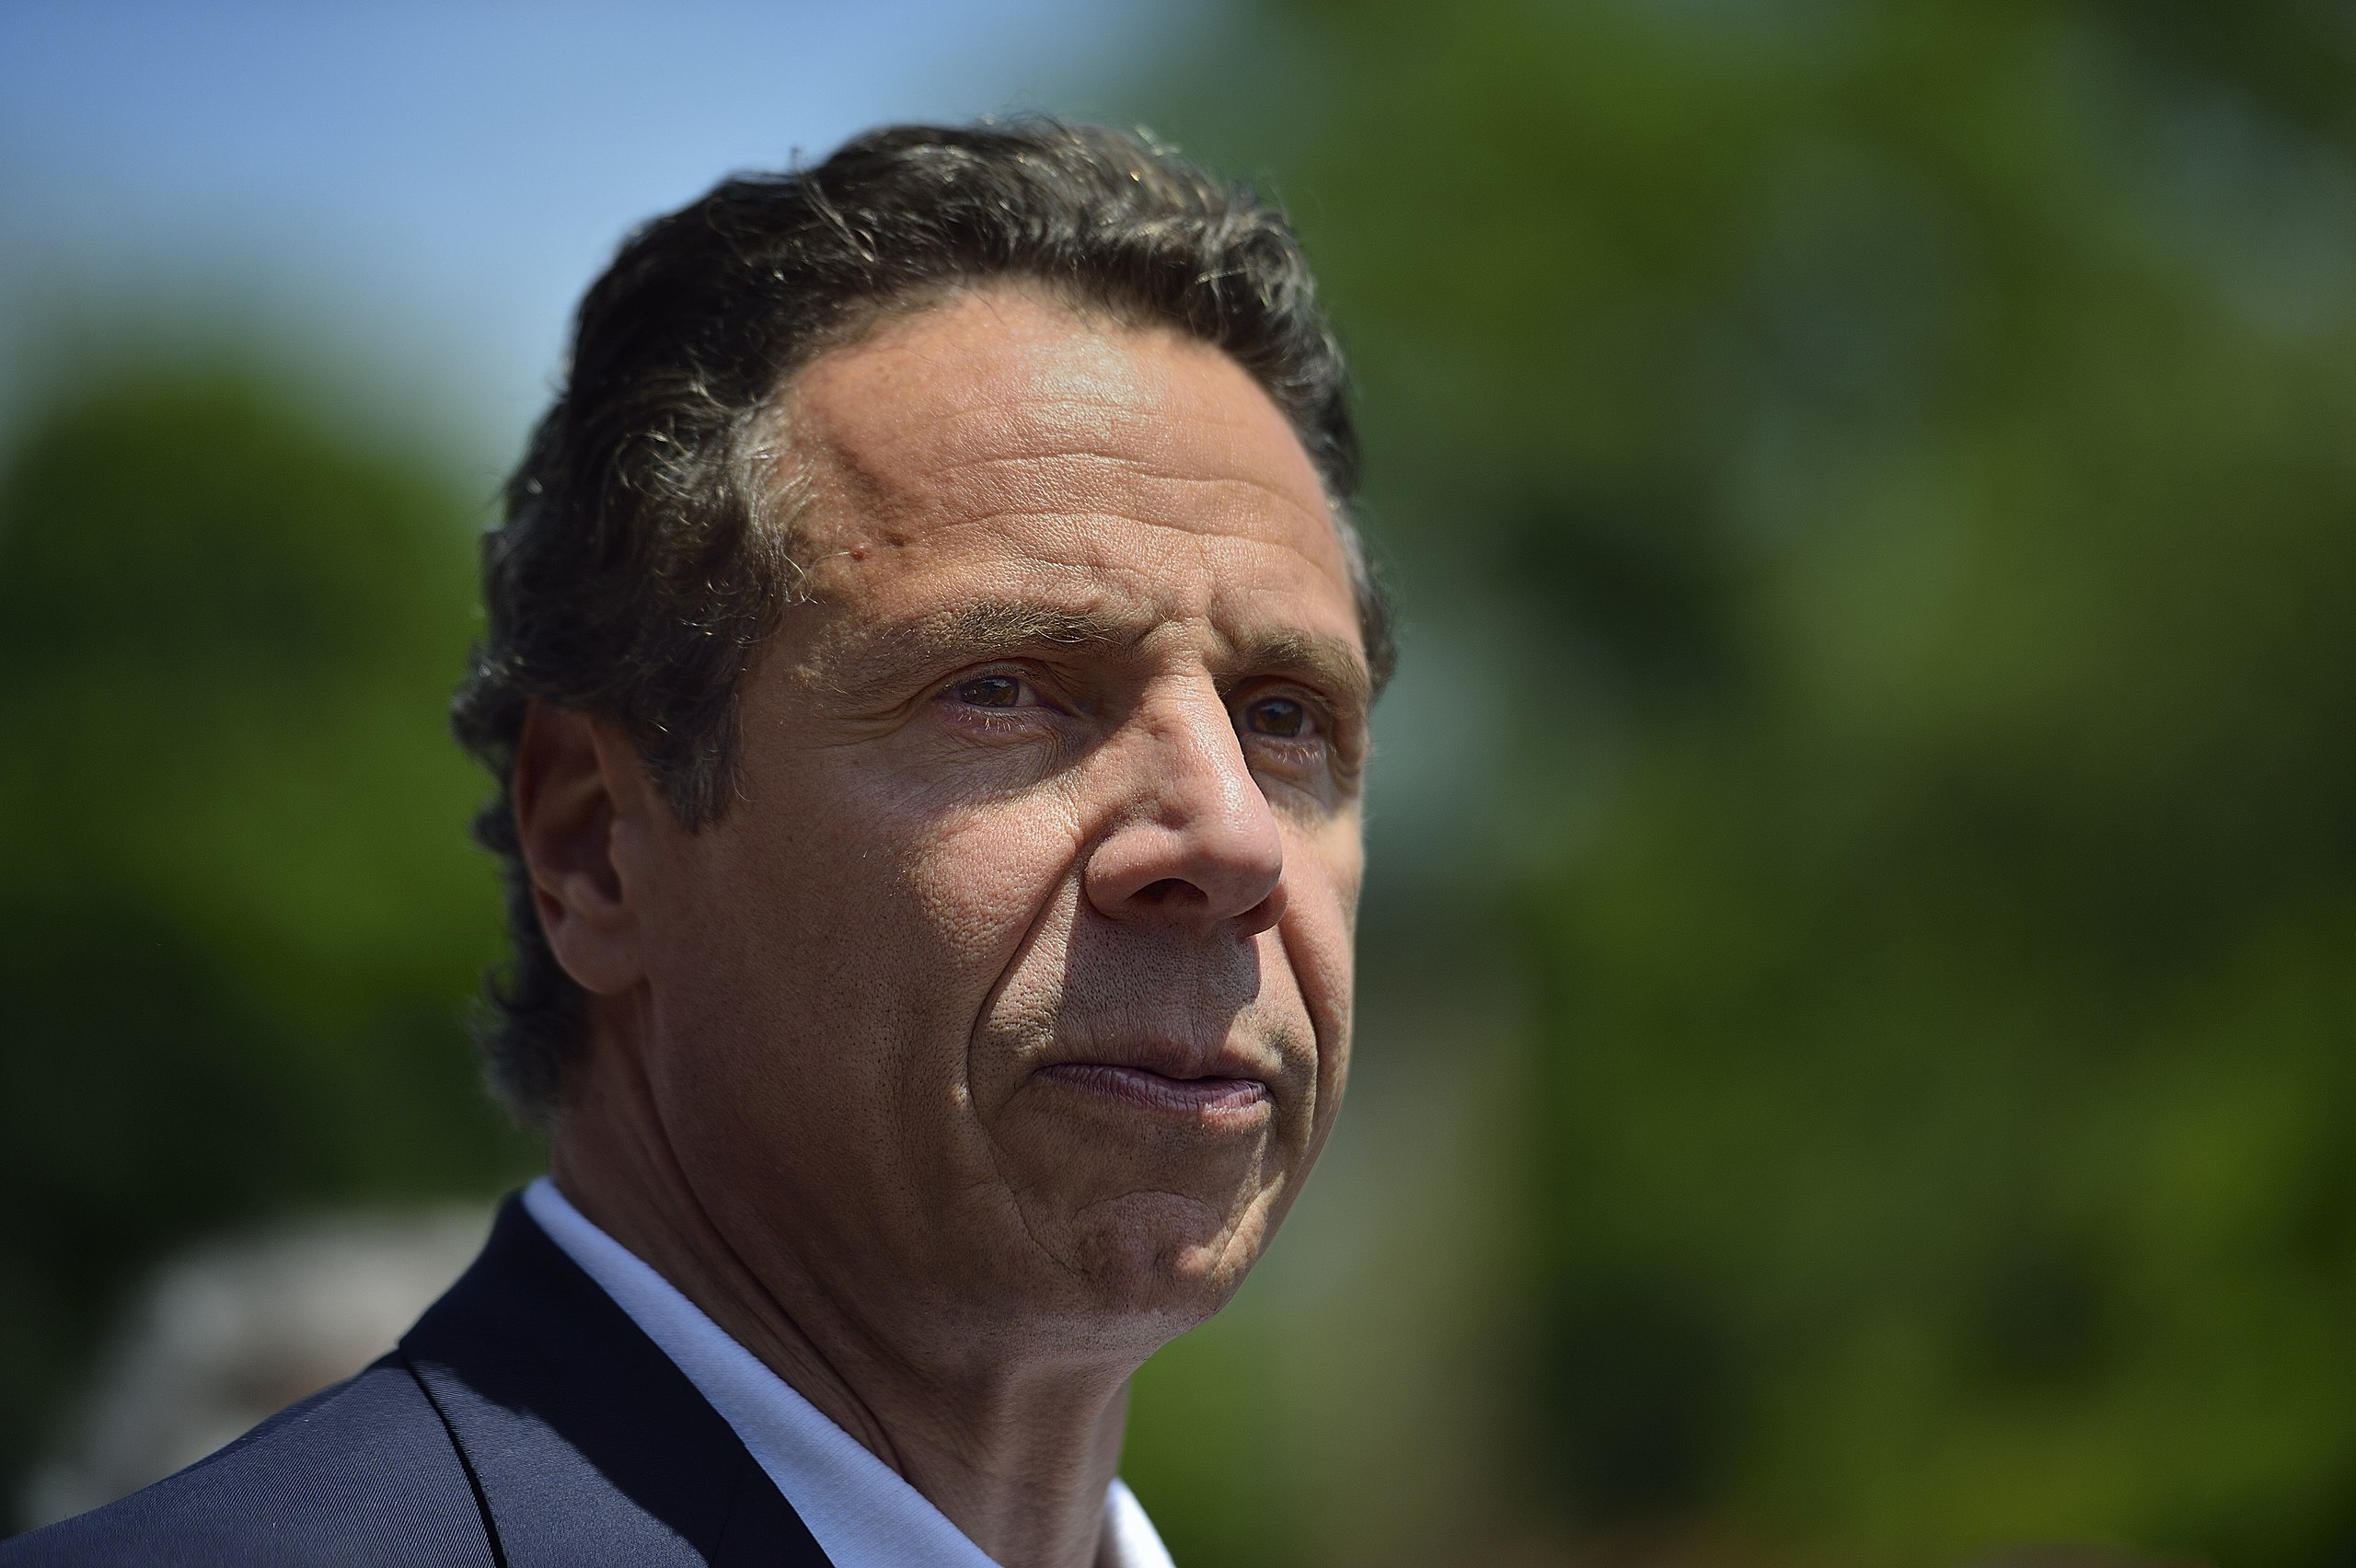 Could Andrew Cuomo Walk Away From A Brokered Convention With The Democratic Nomination?